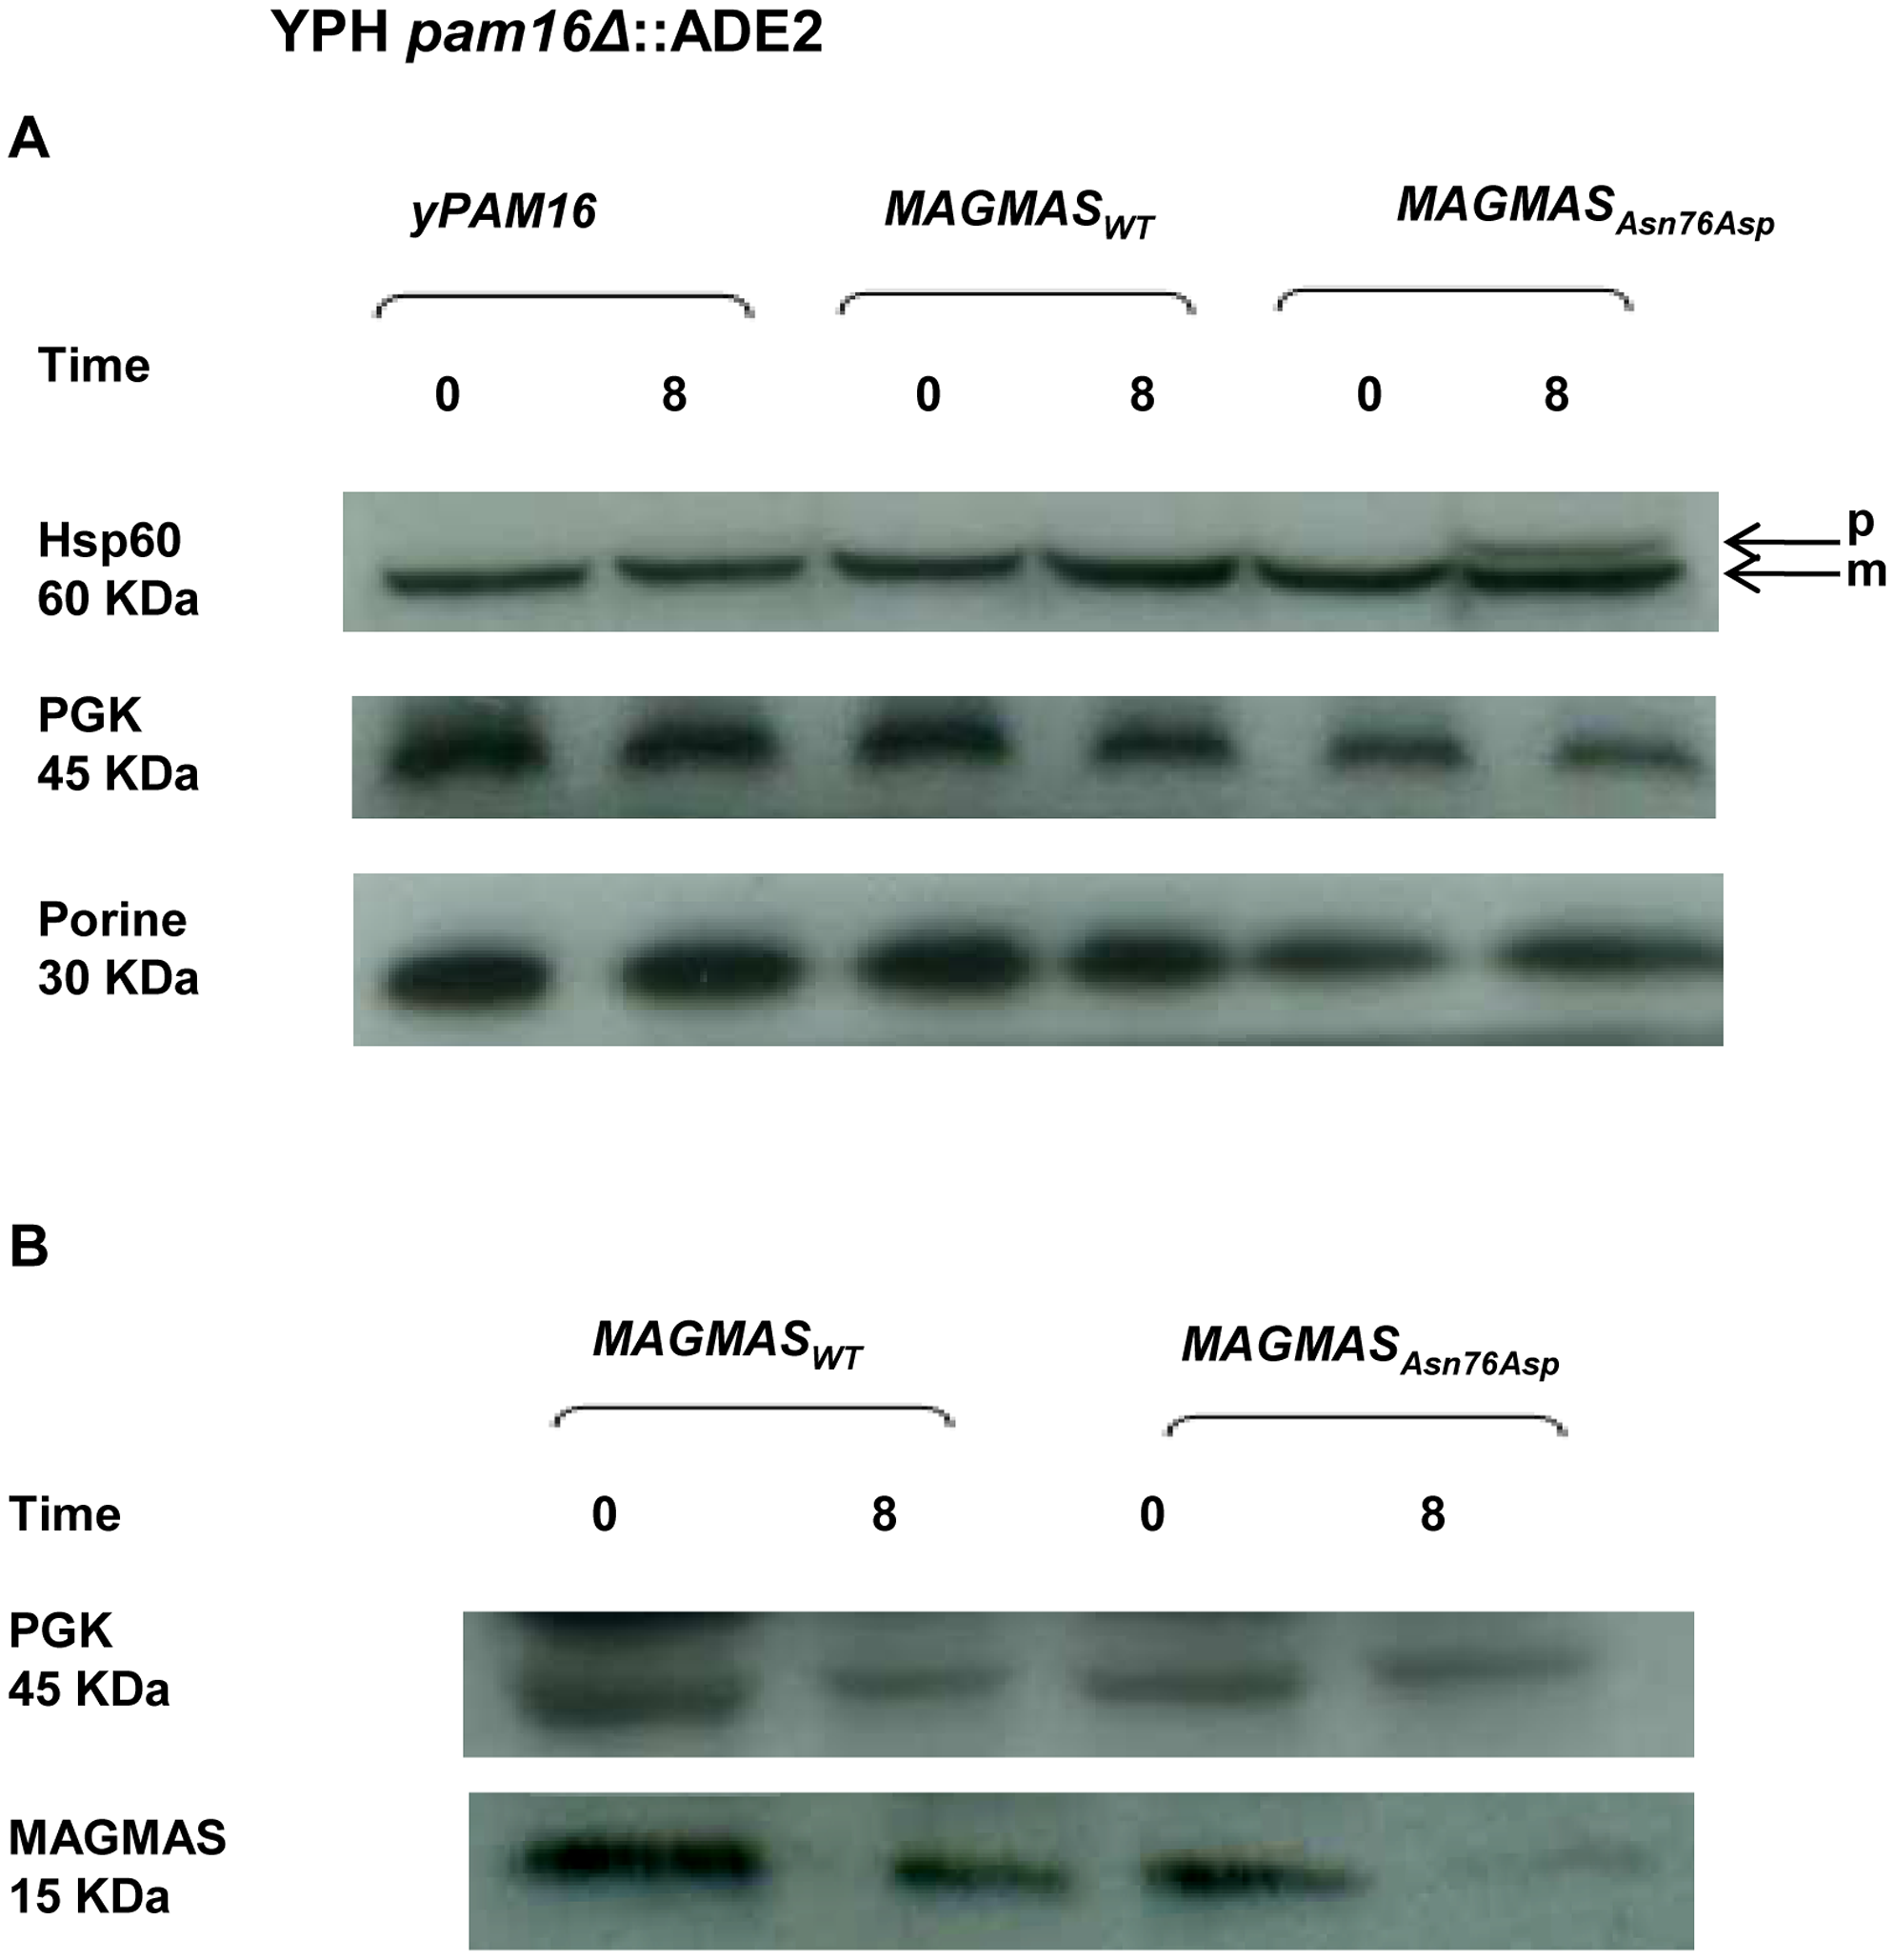 Preprotein translocation and MAGMAS expression analyses in yeast cells.